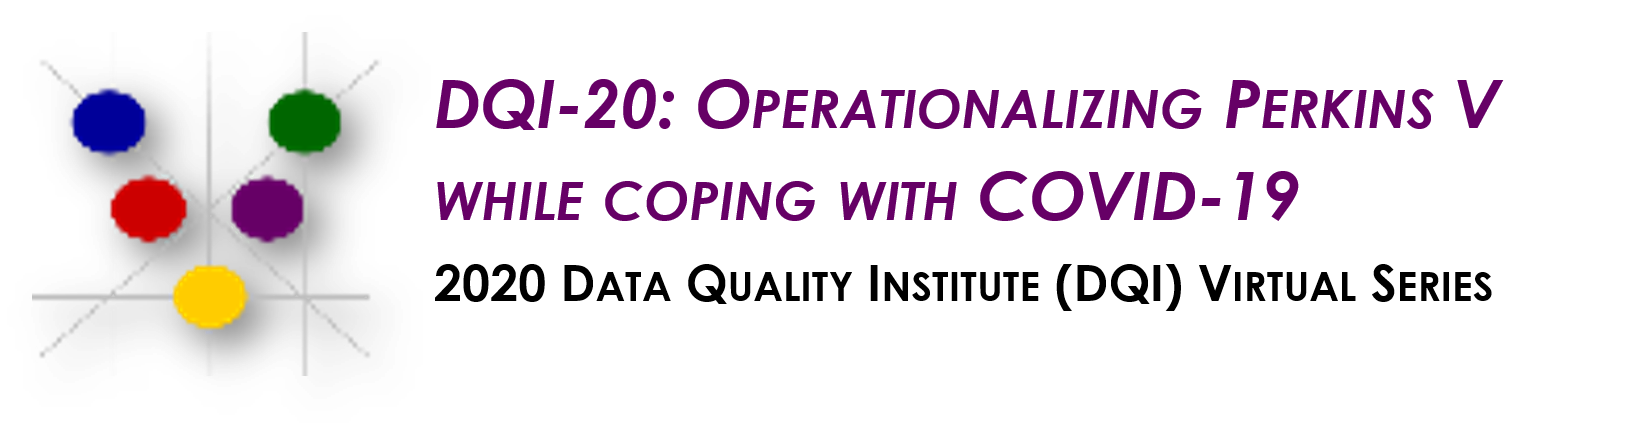 DQI-20: Operationalizing Perkins V while Coping wi